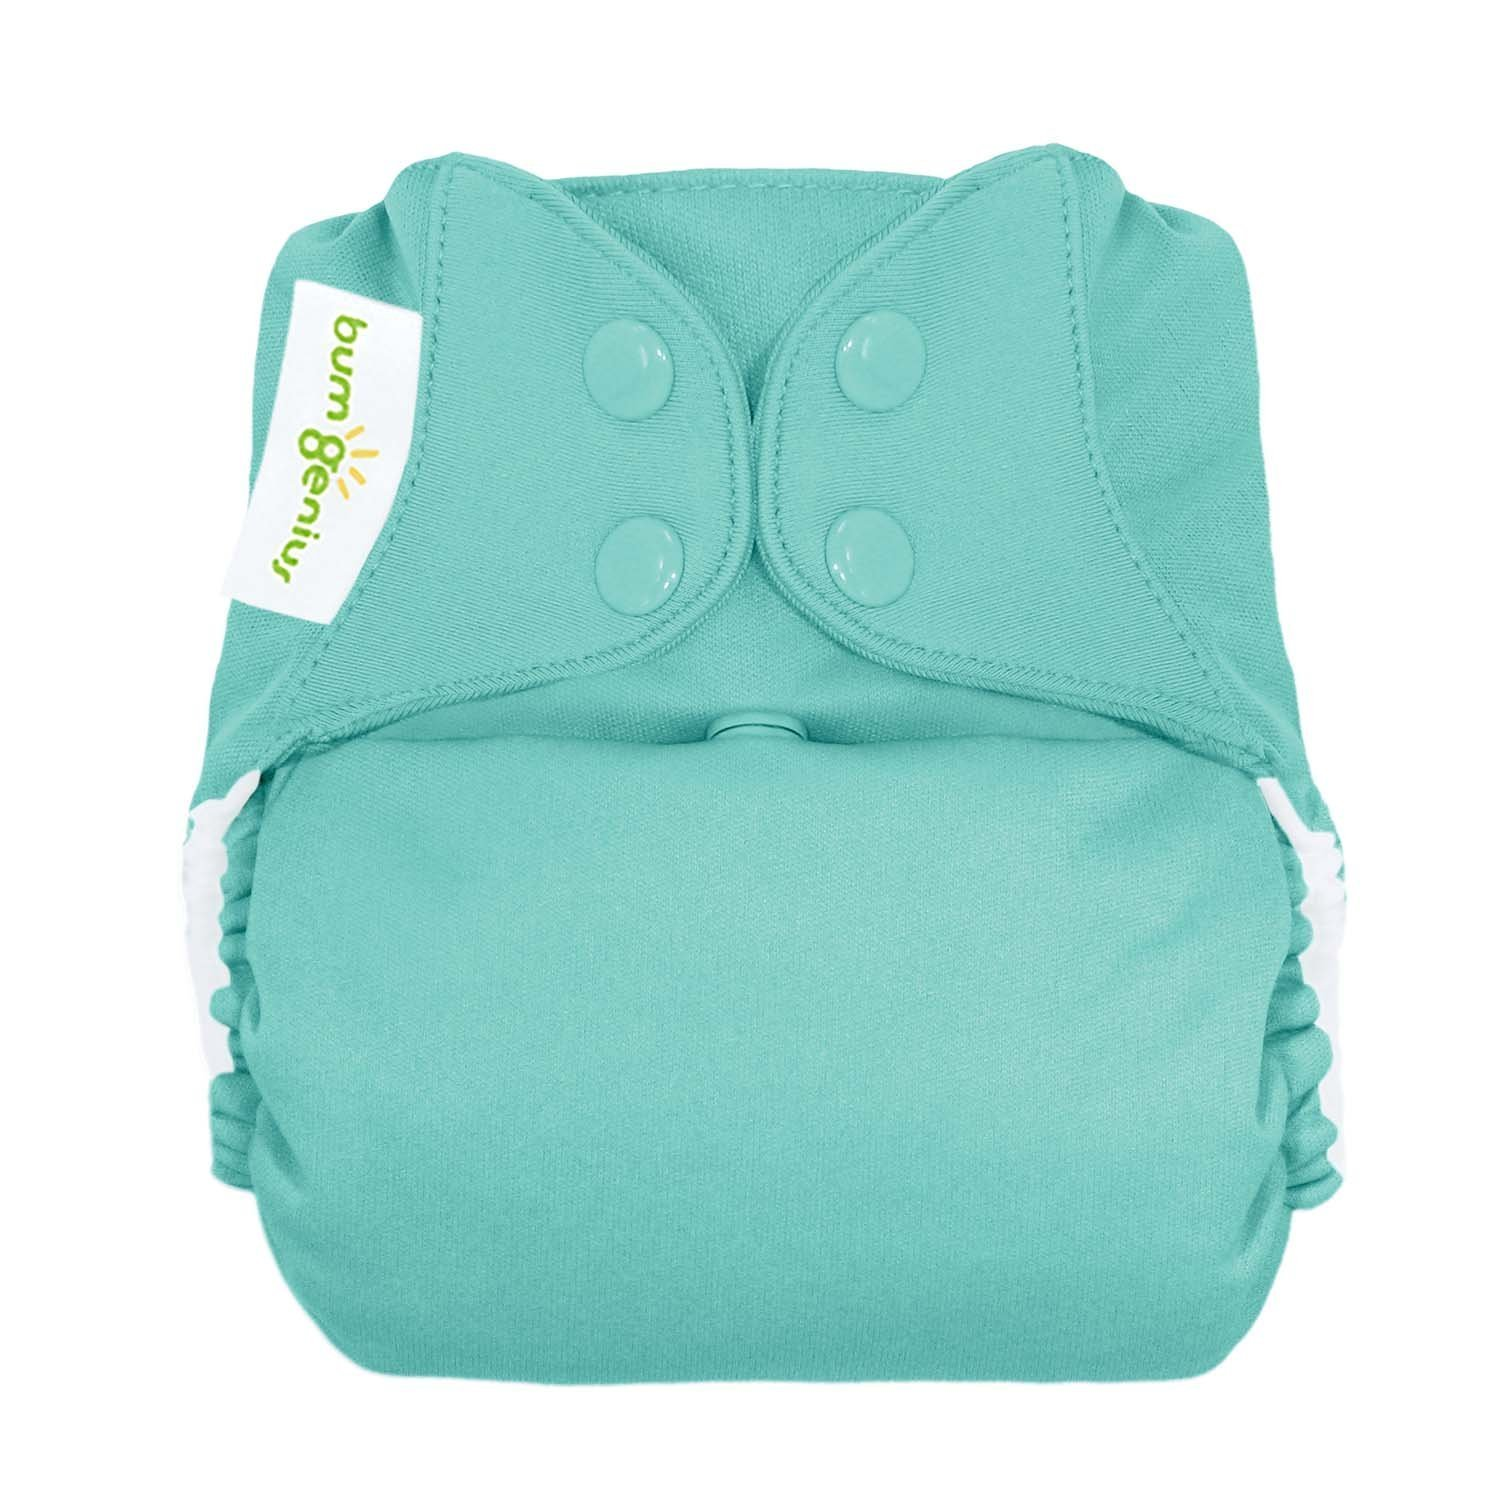 Bumgenius Freetime Cloth Diapers 6 Pack Mixed Colors Snaps by Freetime (Image #9)